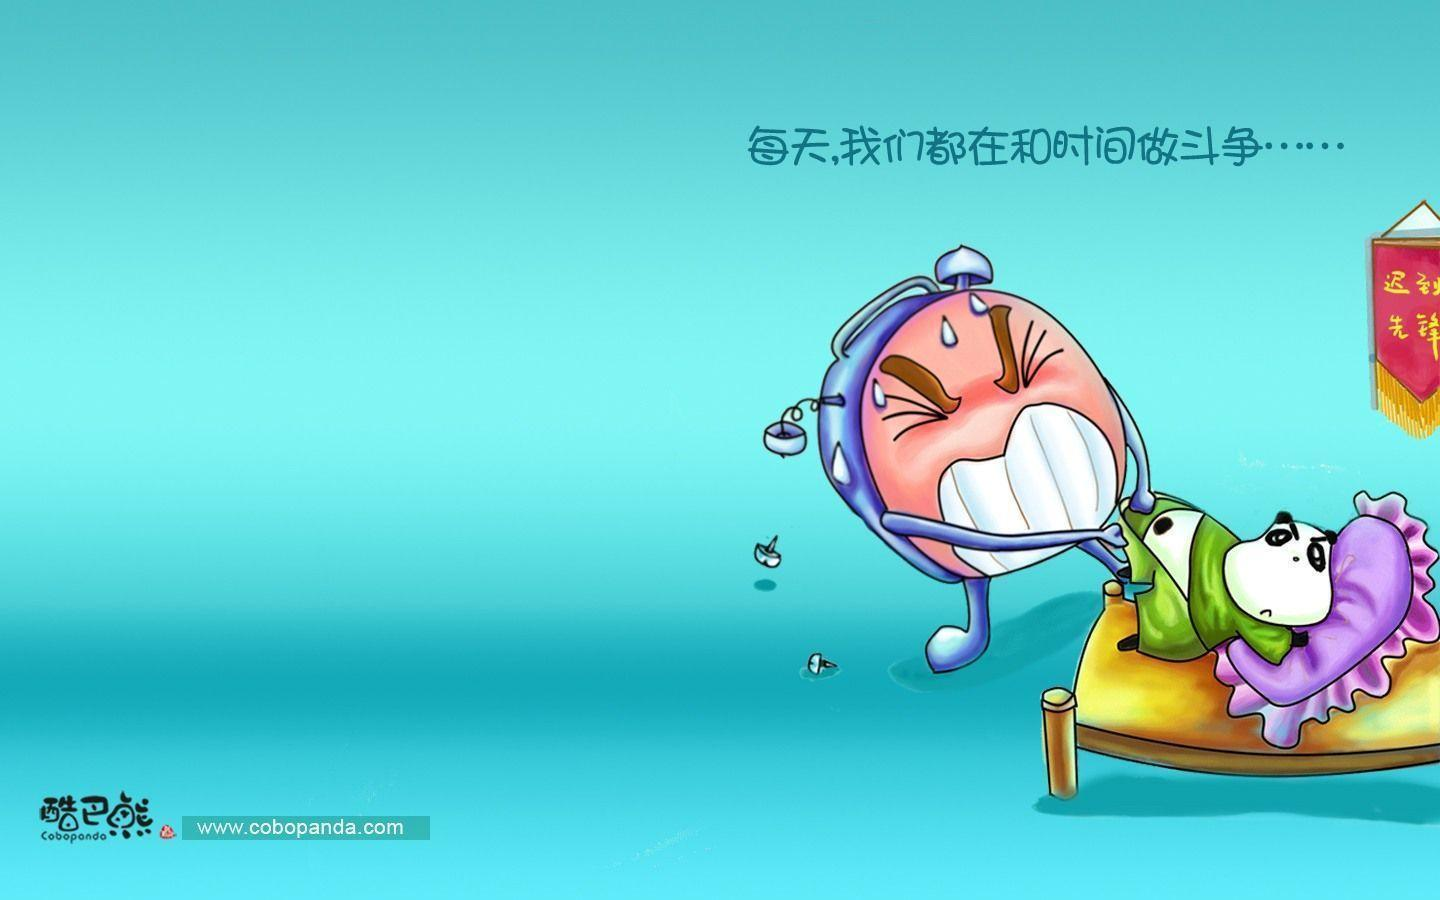 cartoons wallpapers 2 - photo #25